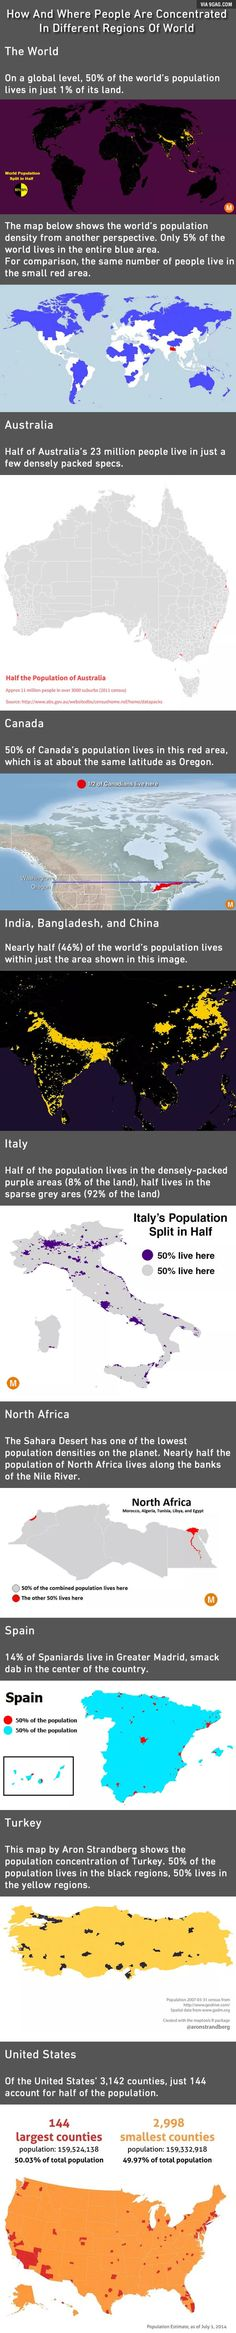 These Maps Show How Much Of The World's Population Occupies So Little Of Its Land. What Can We Do On The Unoccupied? - 9GAG